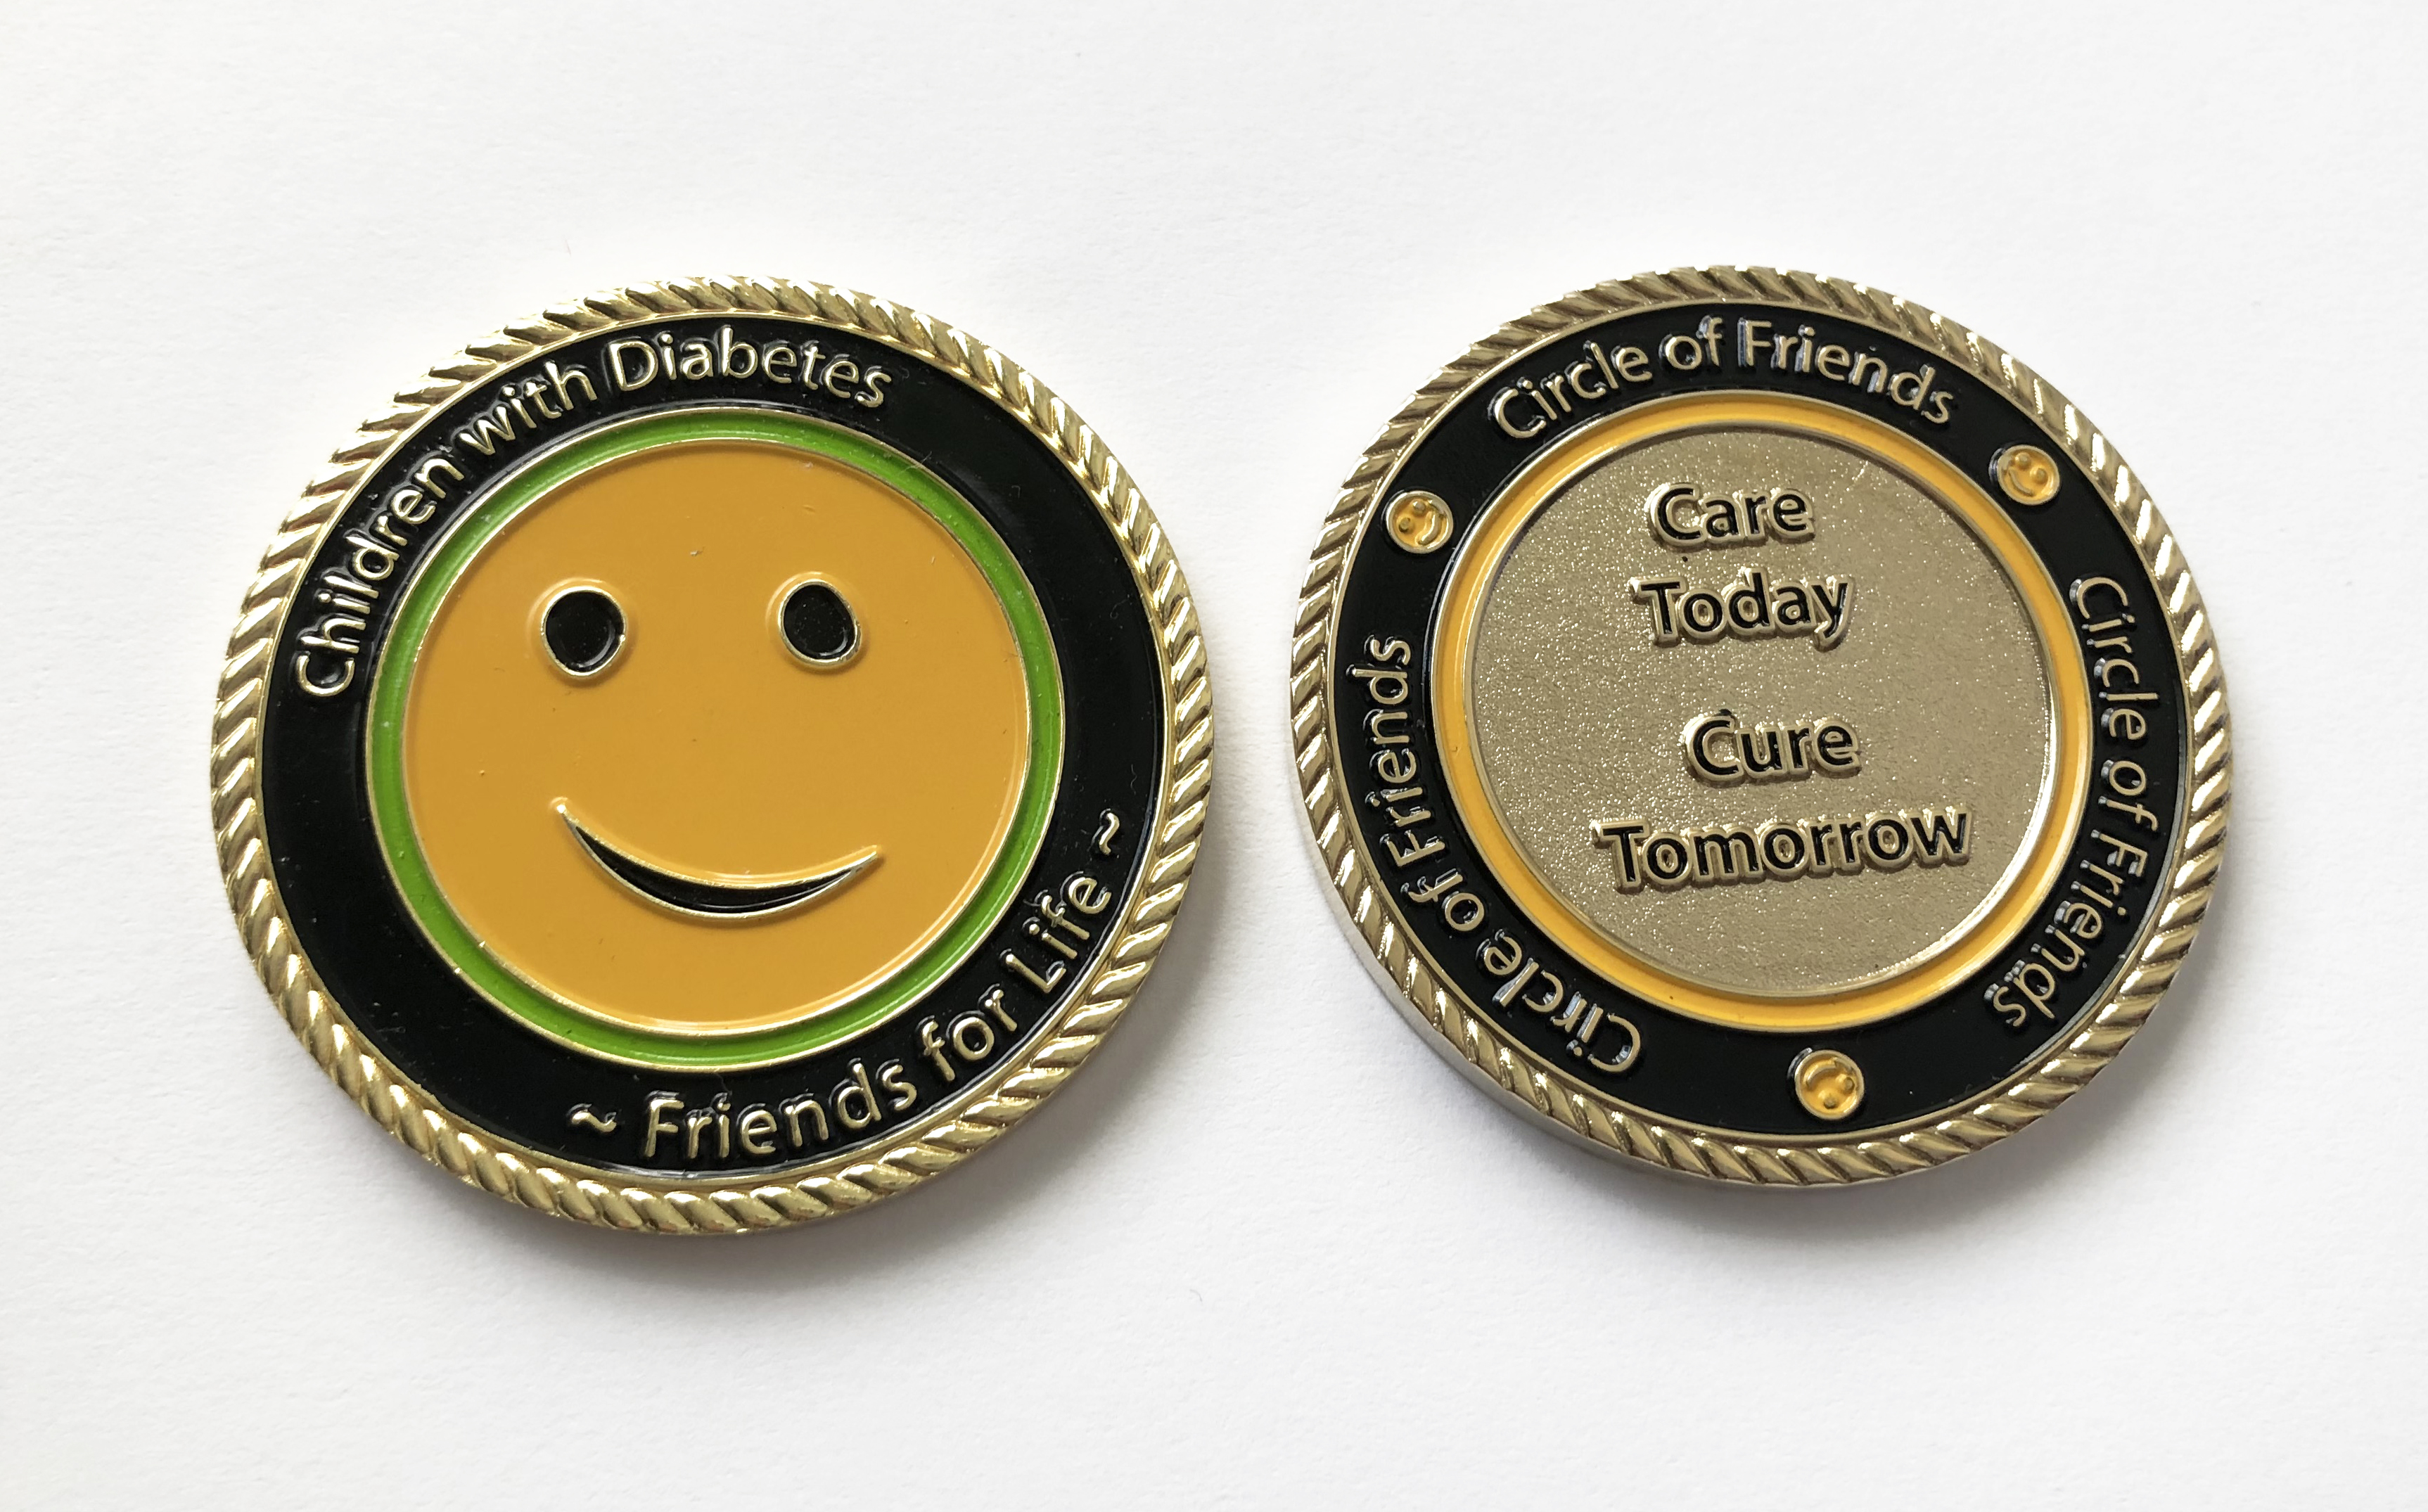 Join our Circle of Friends ... for Life!